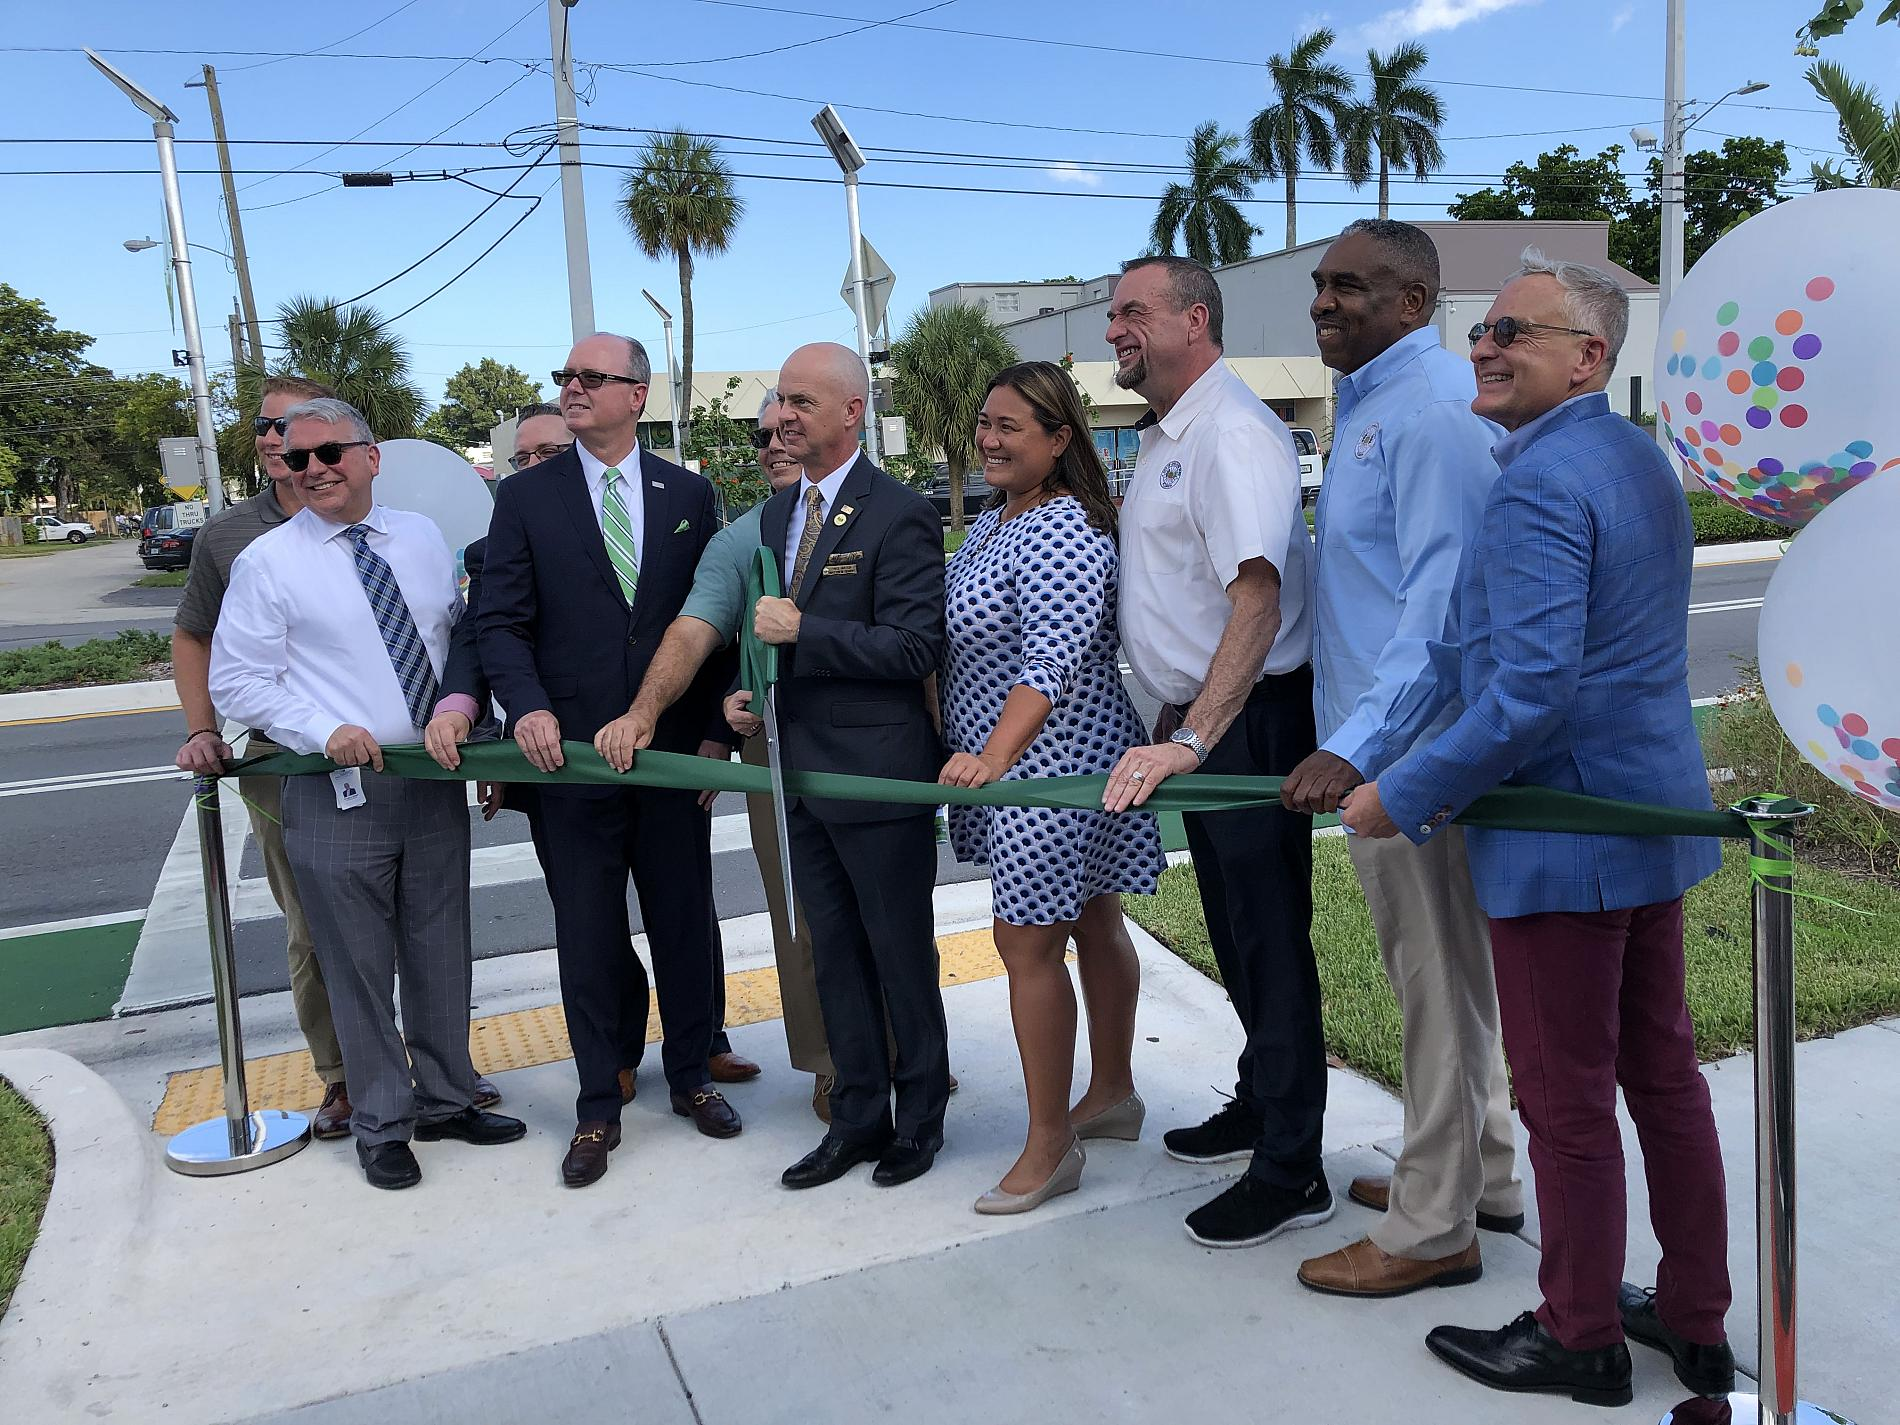 Andrews Ave ribbon cutting